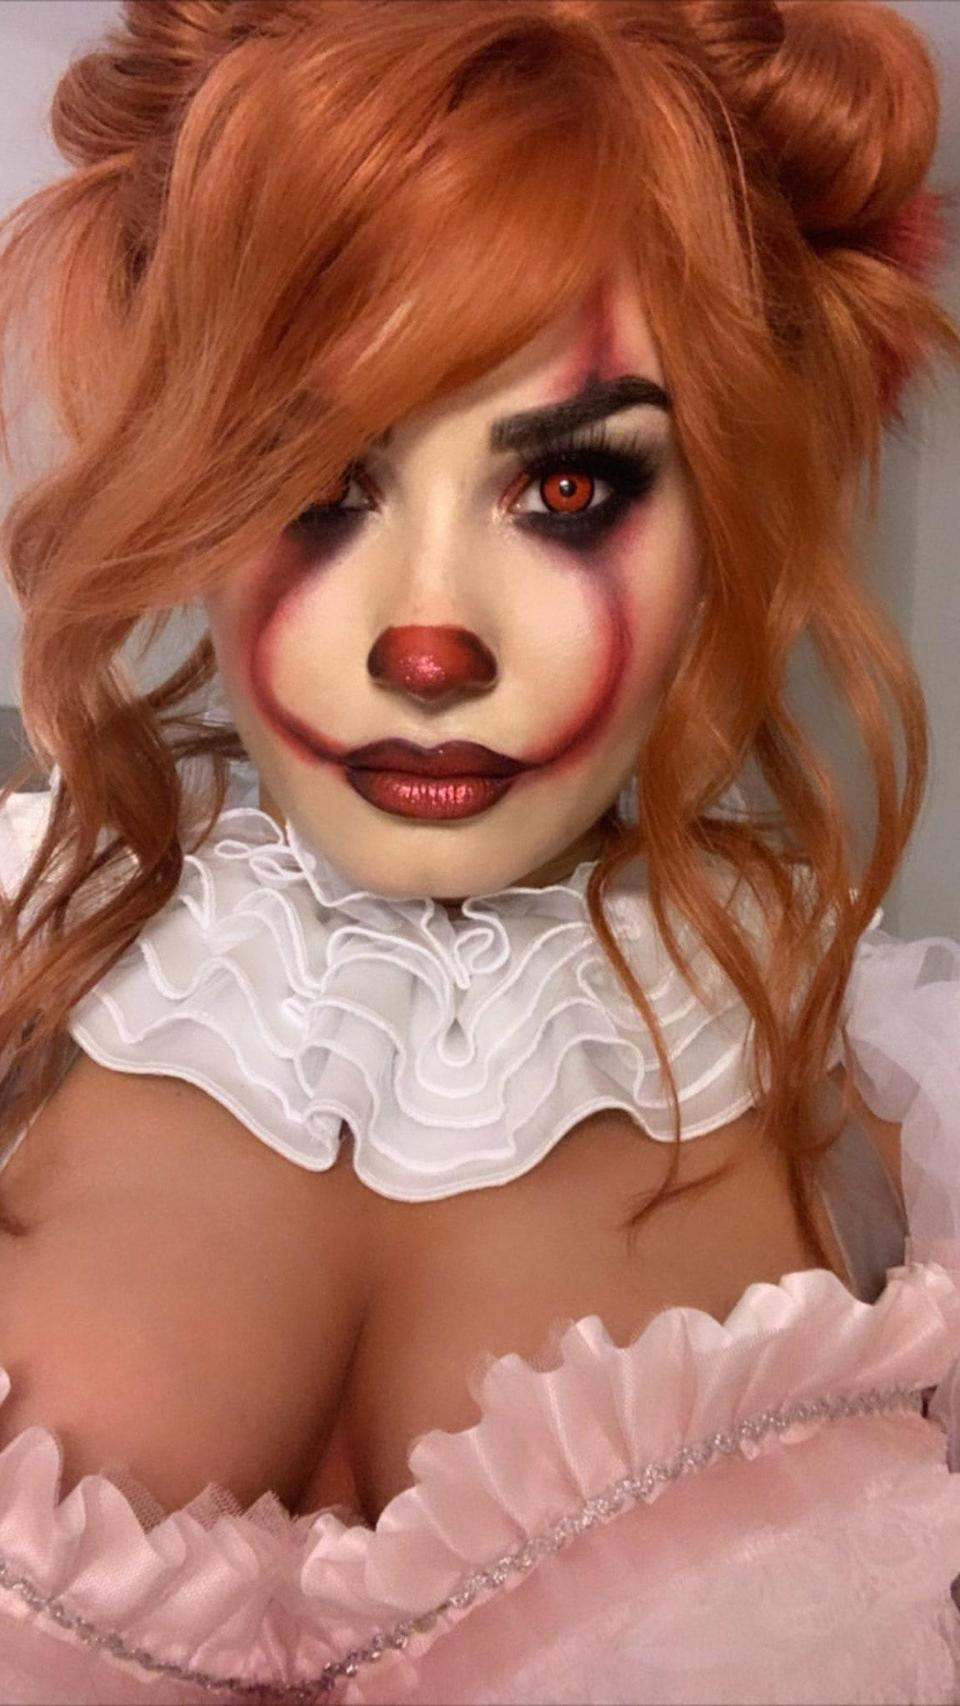 Demi Lovato transformed into Pennywise from the movie <em>It</em> for Halloween 2019, for a star-studded party she hosted at Hollywood's Hyde nightclub. The singer's haunting look included a red wig, the clown's red makeup, and a costume that featured a white tutu and fishnet stockings.